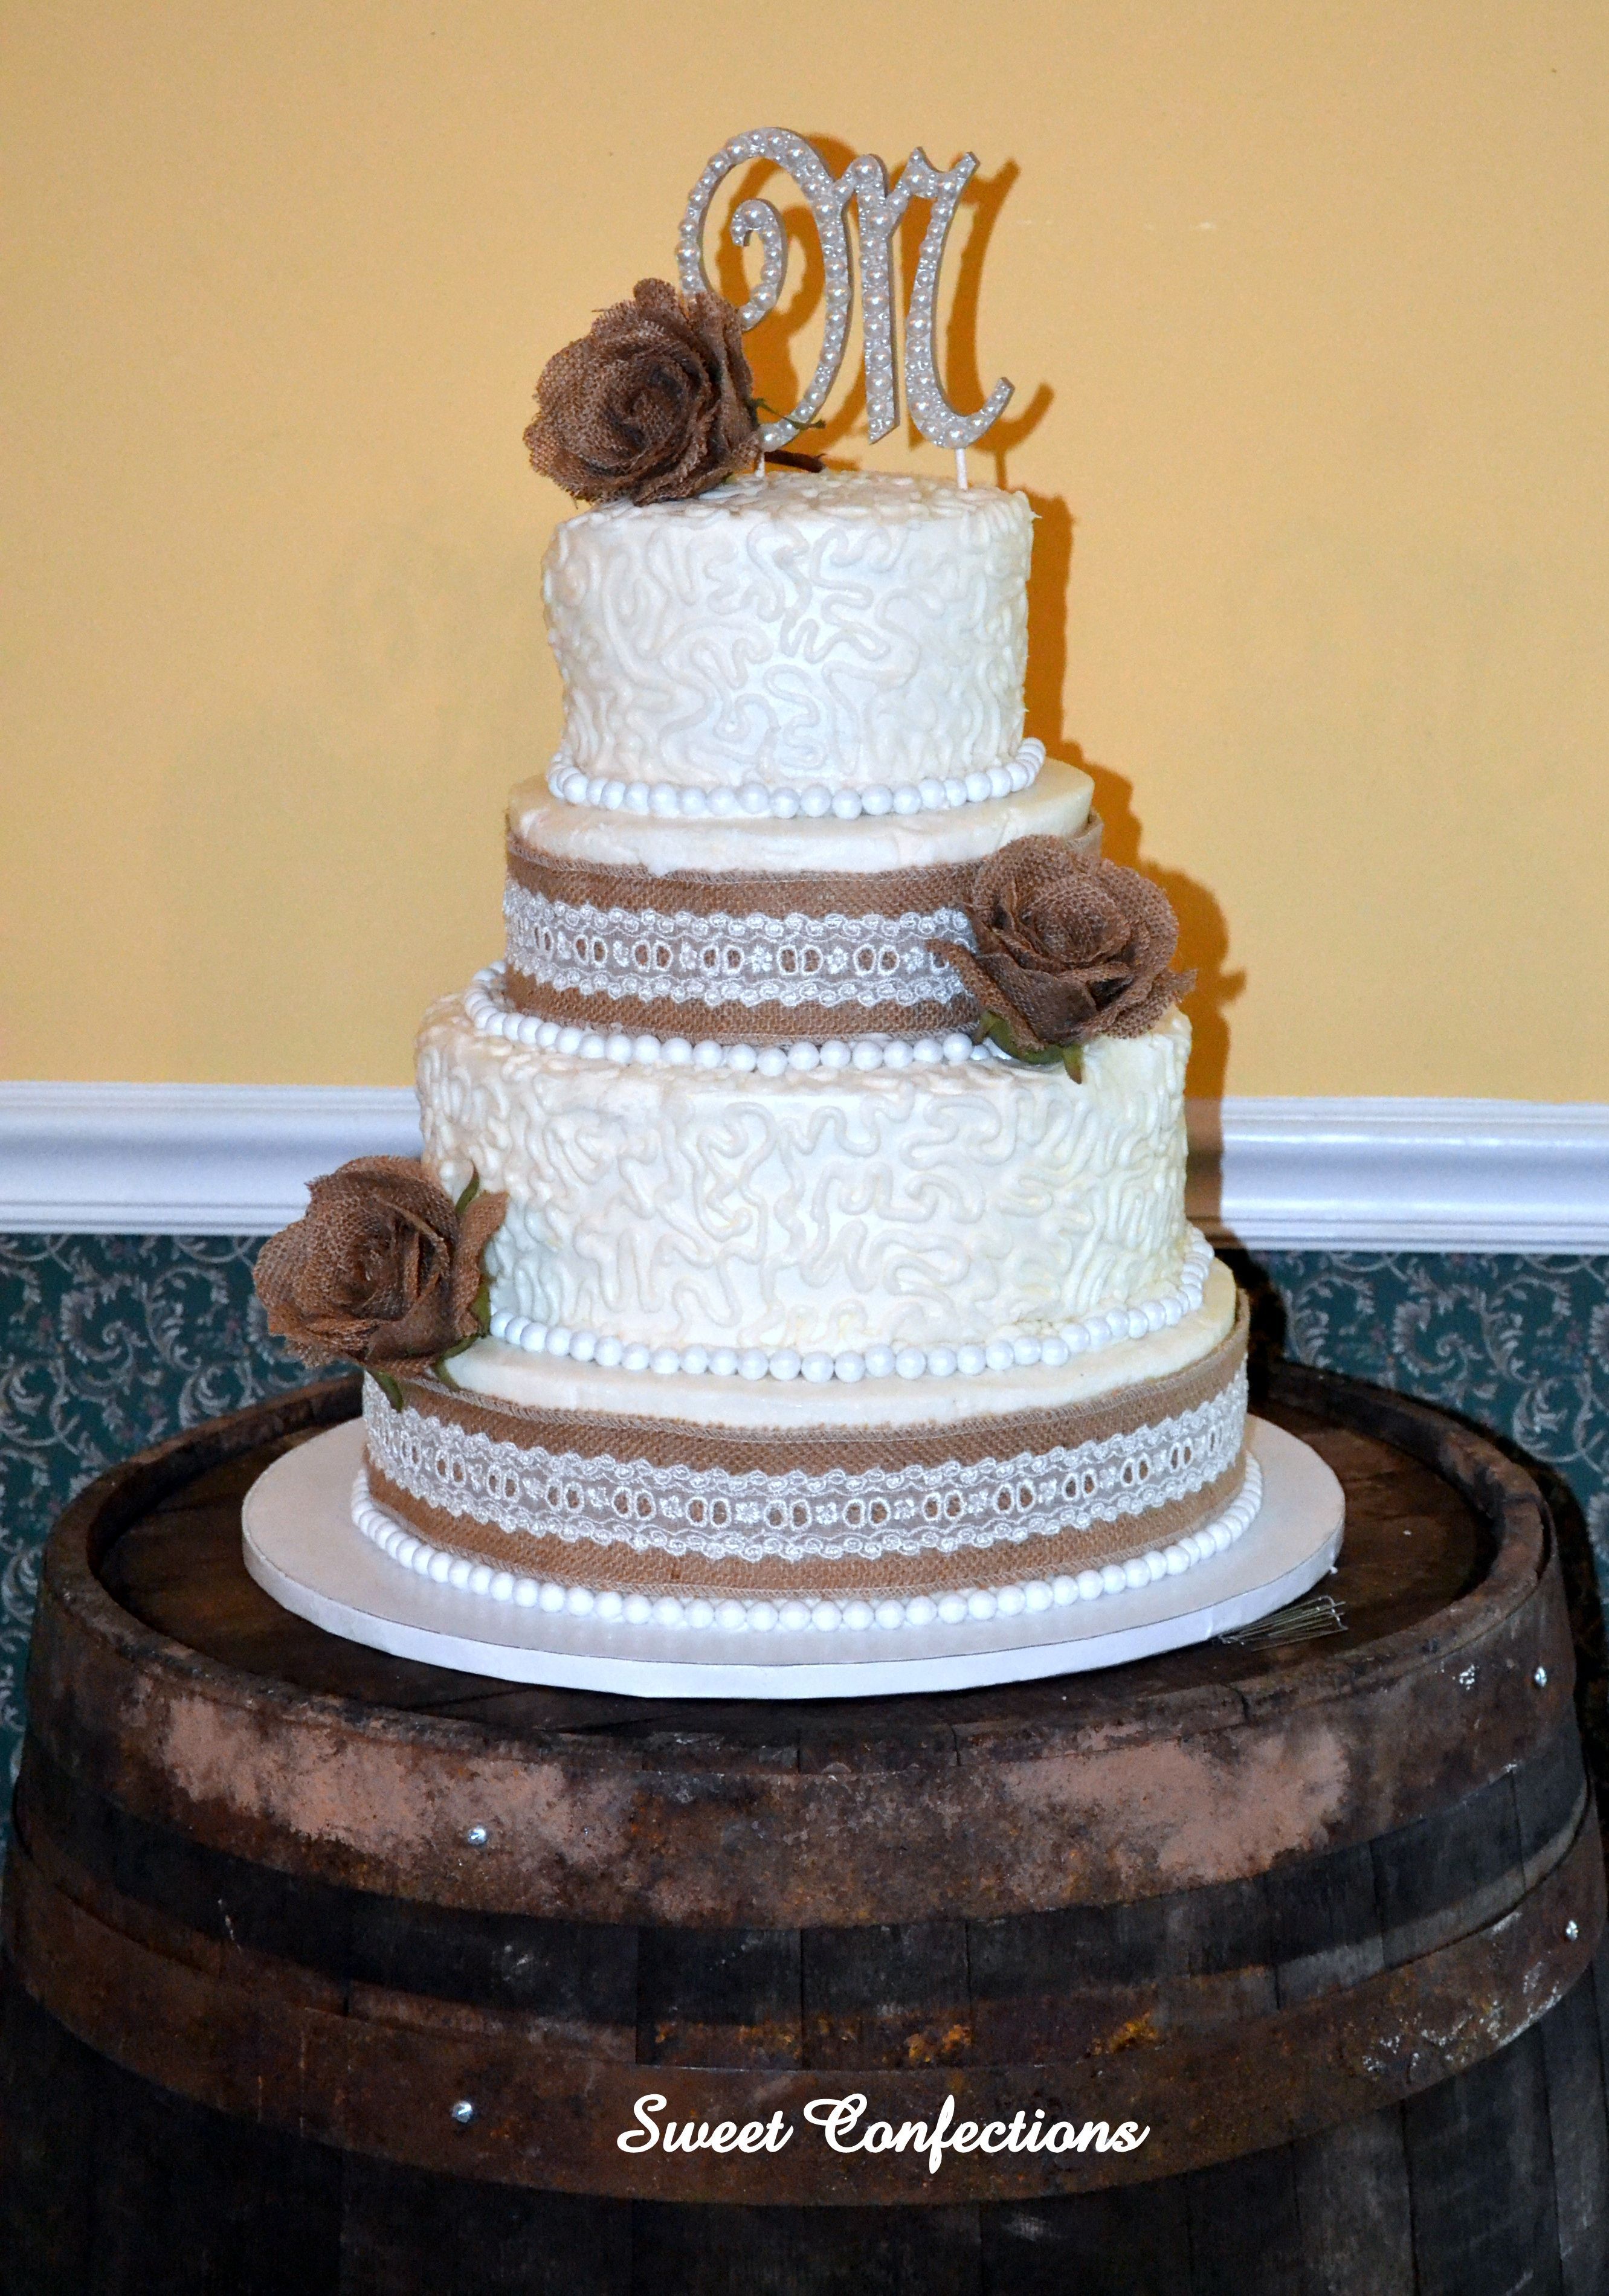 Burlap And Lace Wedding Cake This Is A Four Tier With Ribbon Sewn On Top The Ers Are Iced In Er